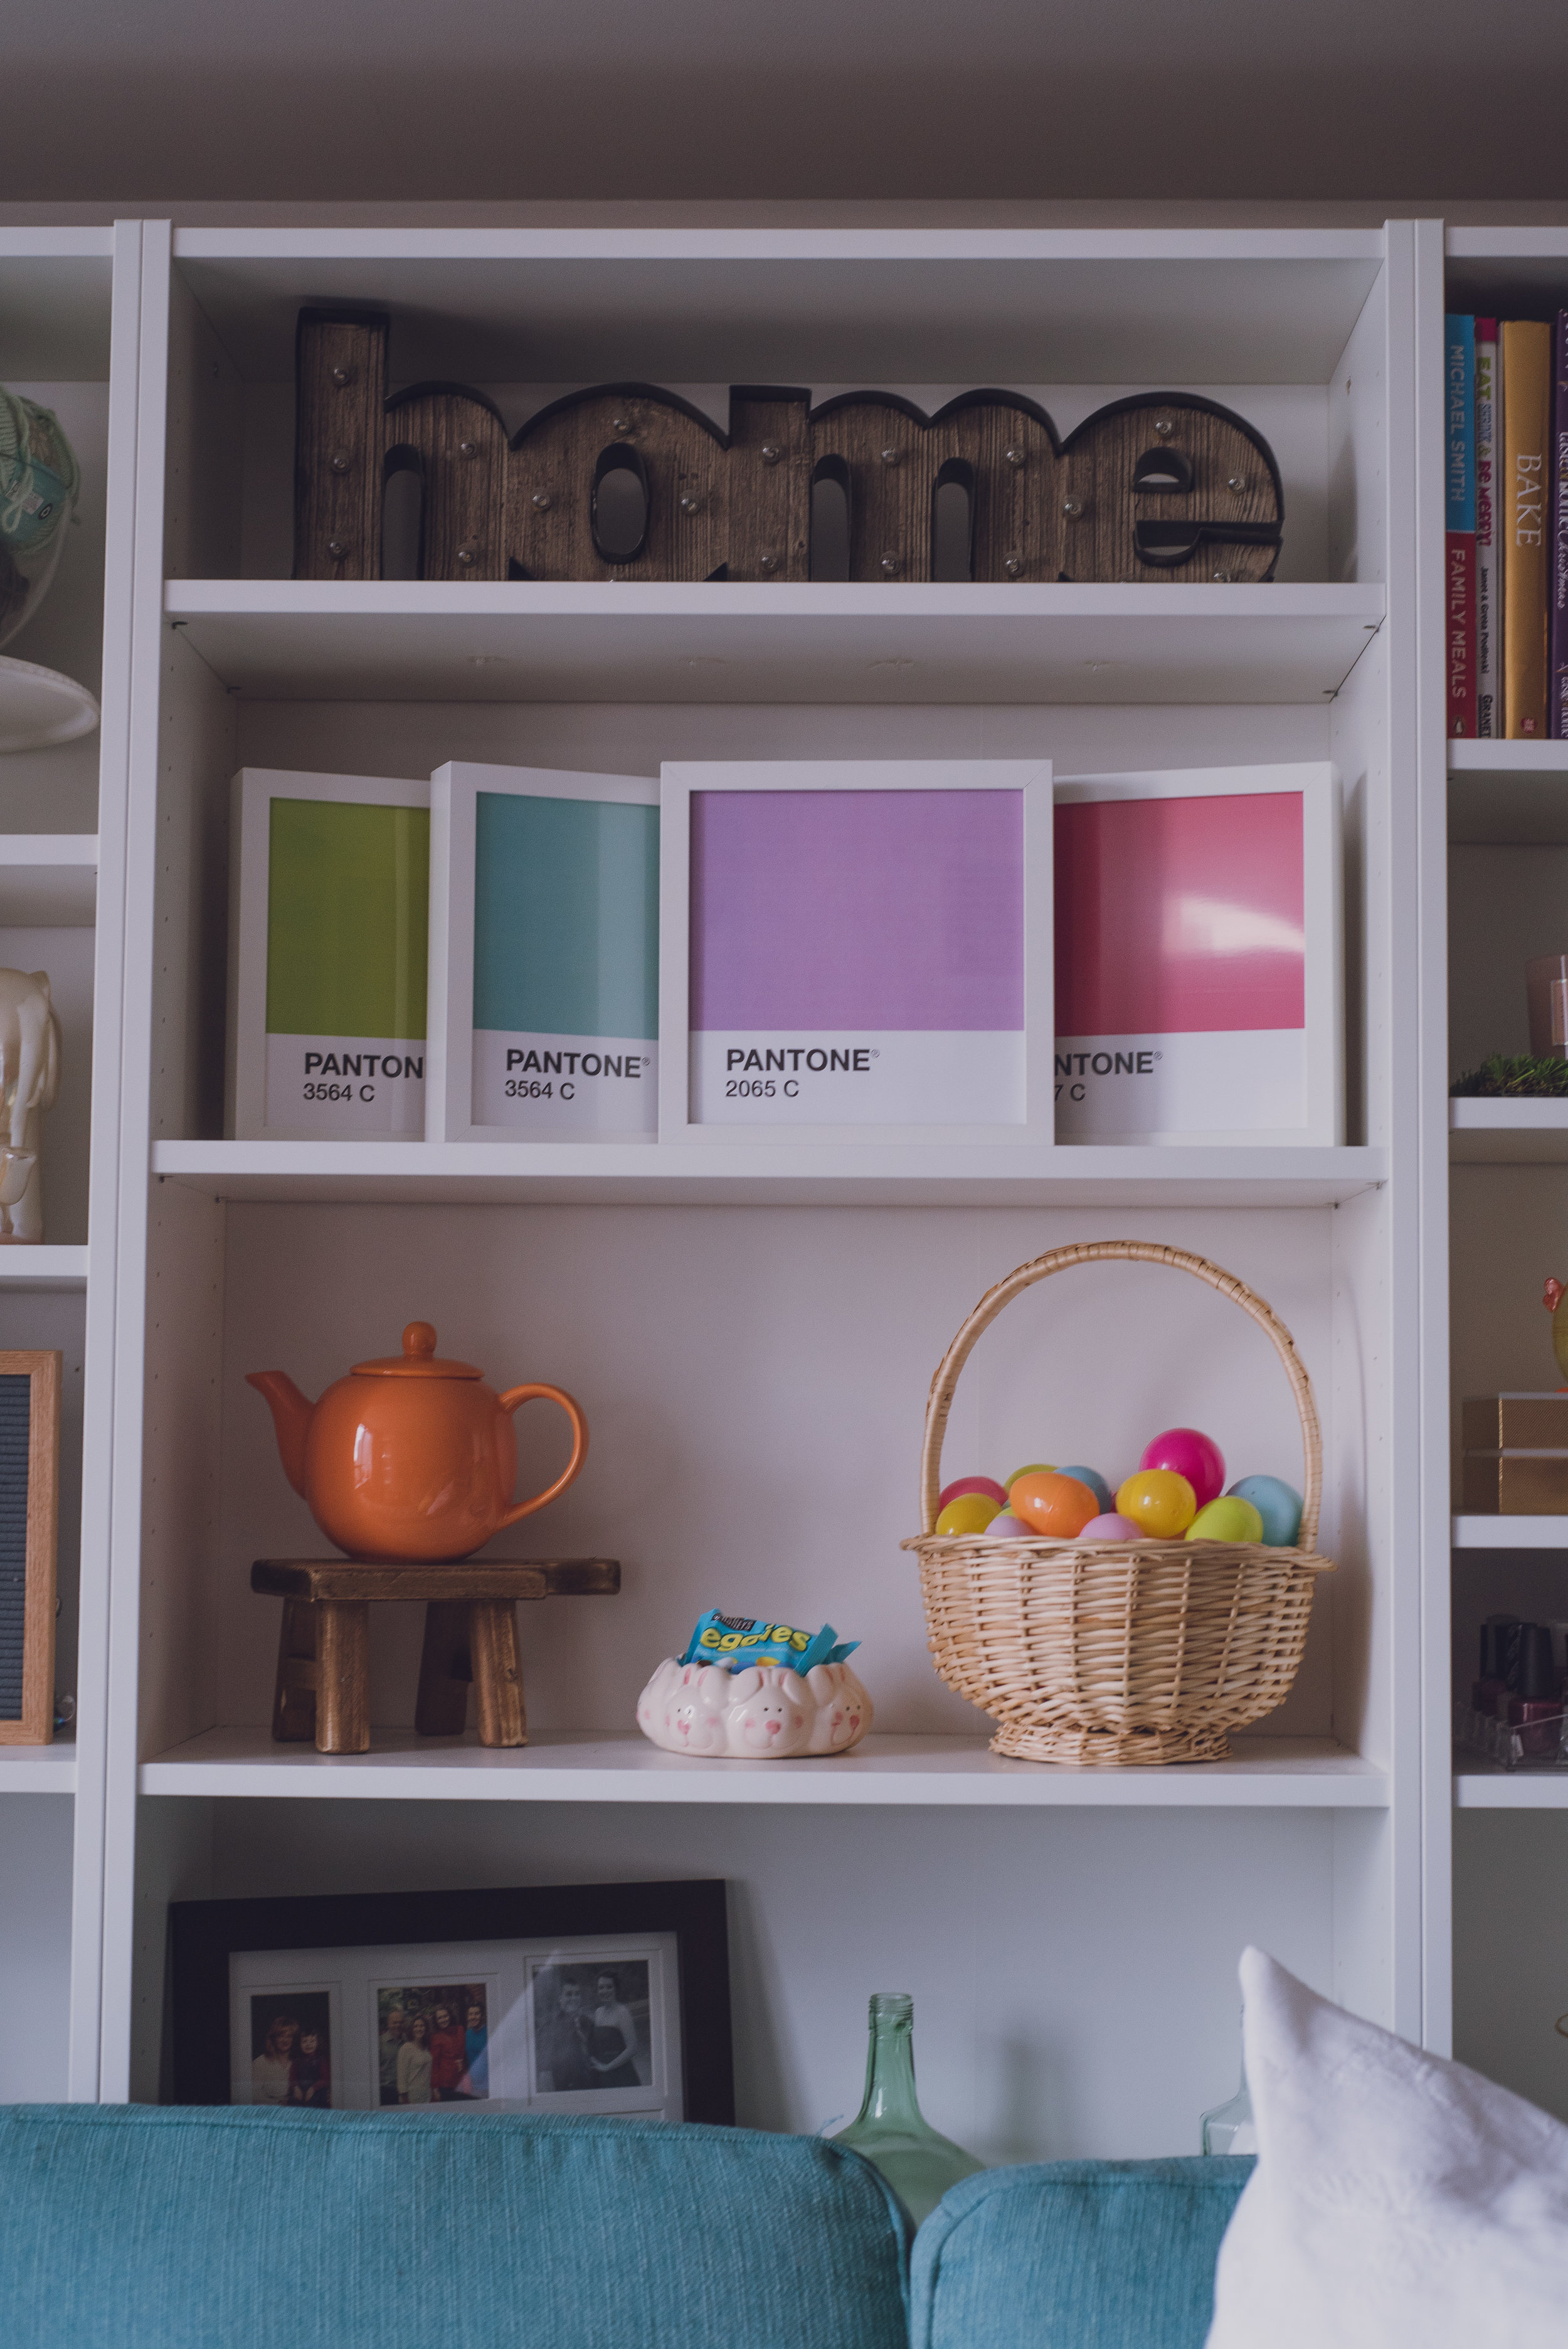 Pantone-chip-printables-in-bookshelf-lily-muffins.jpg